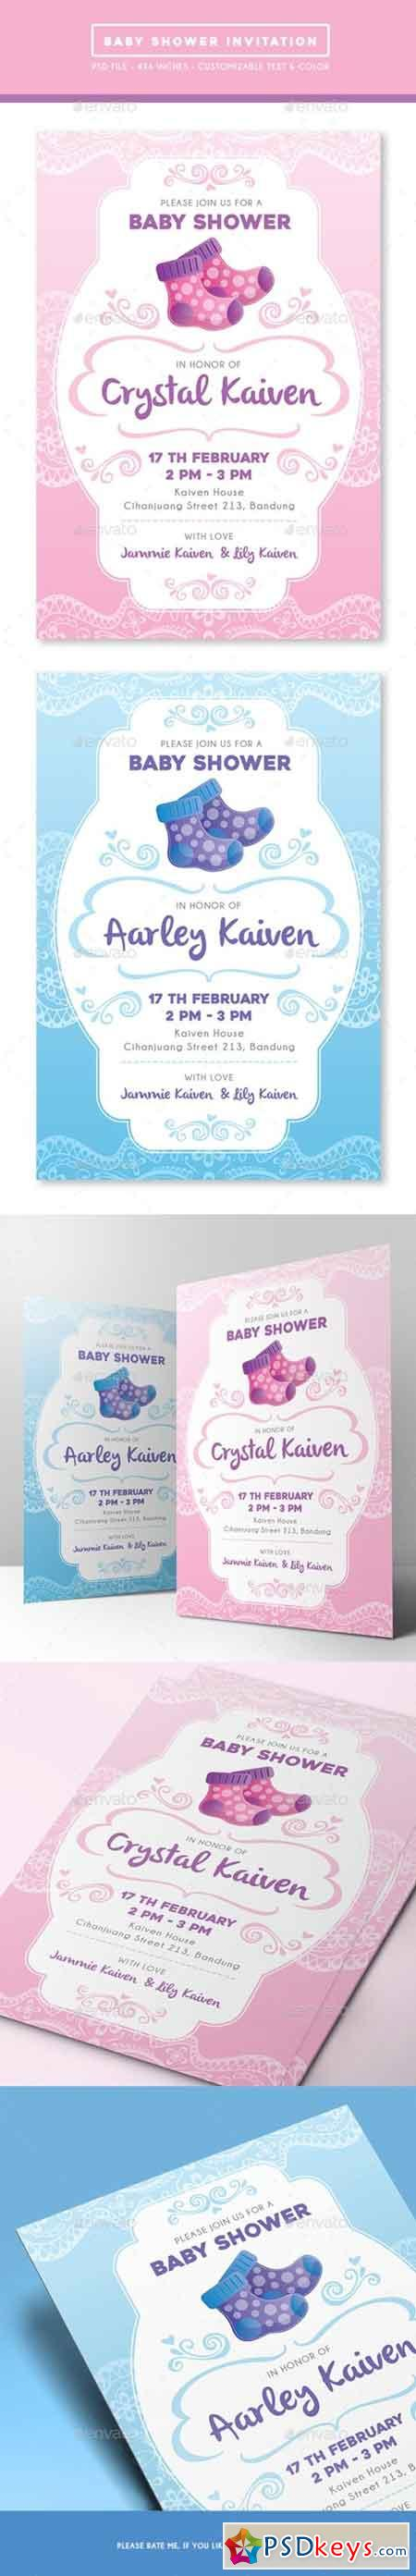 Baby Shower Invitation 15355796